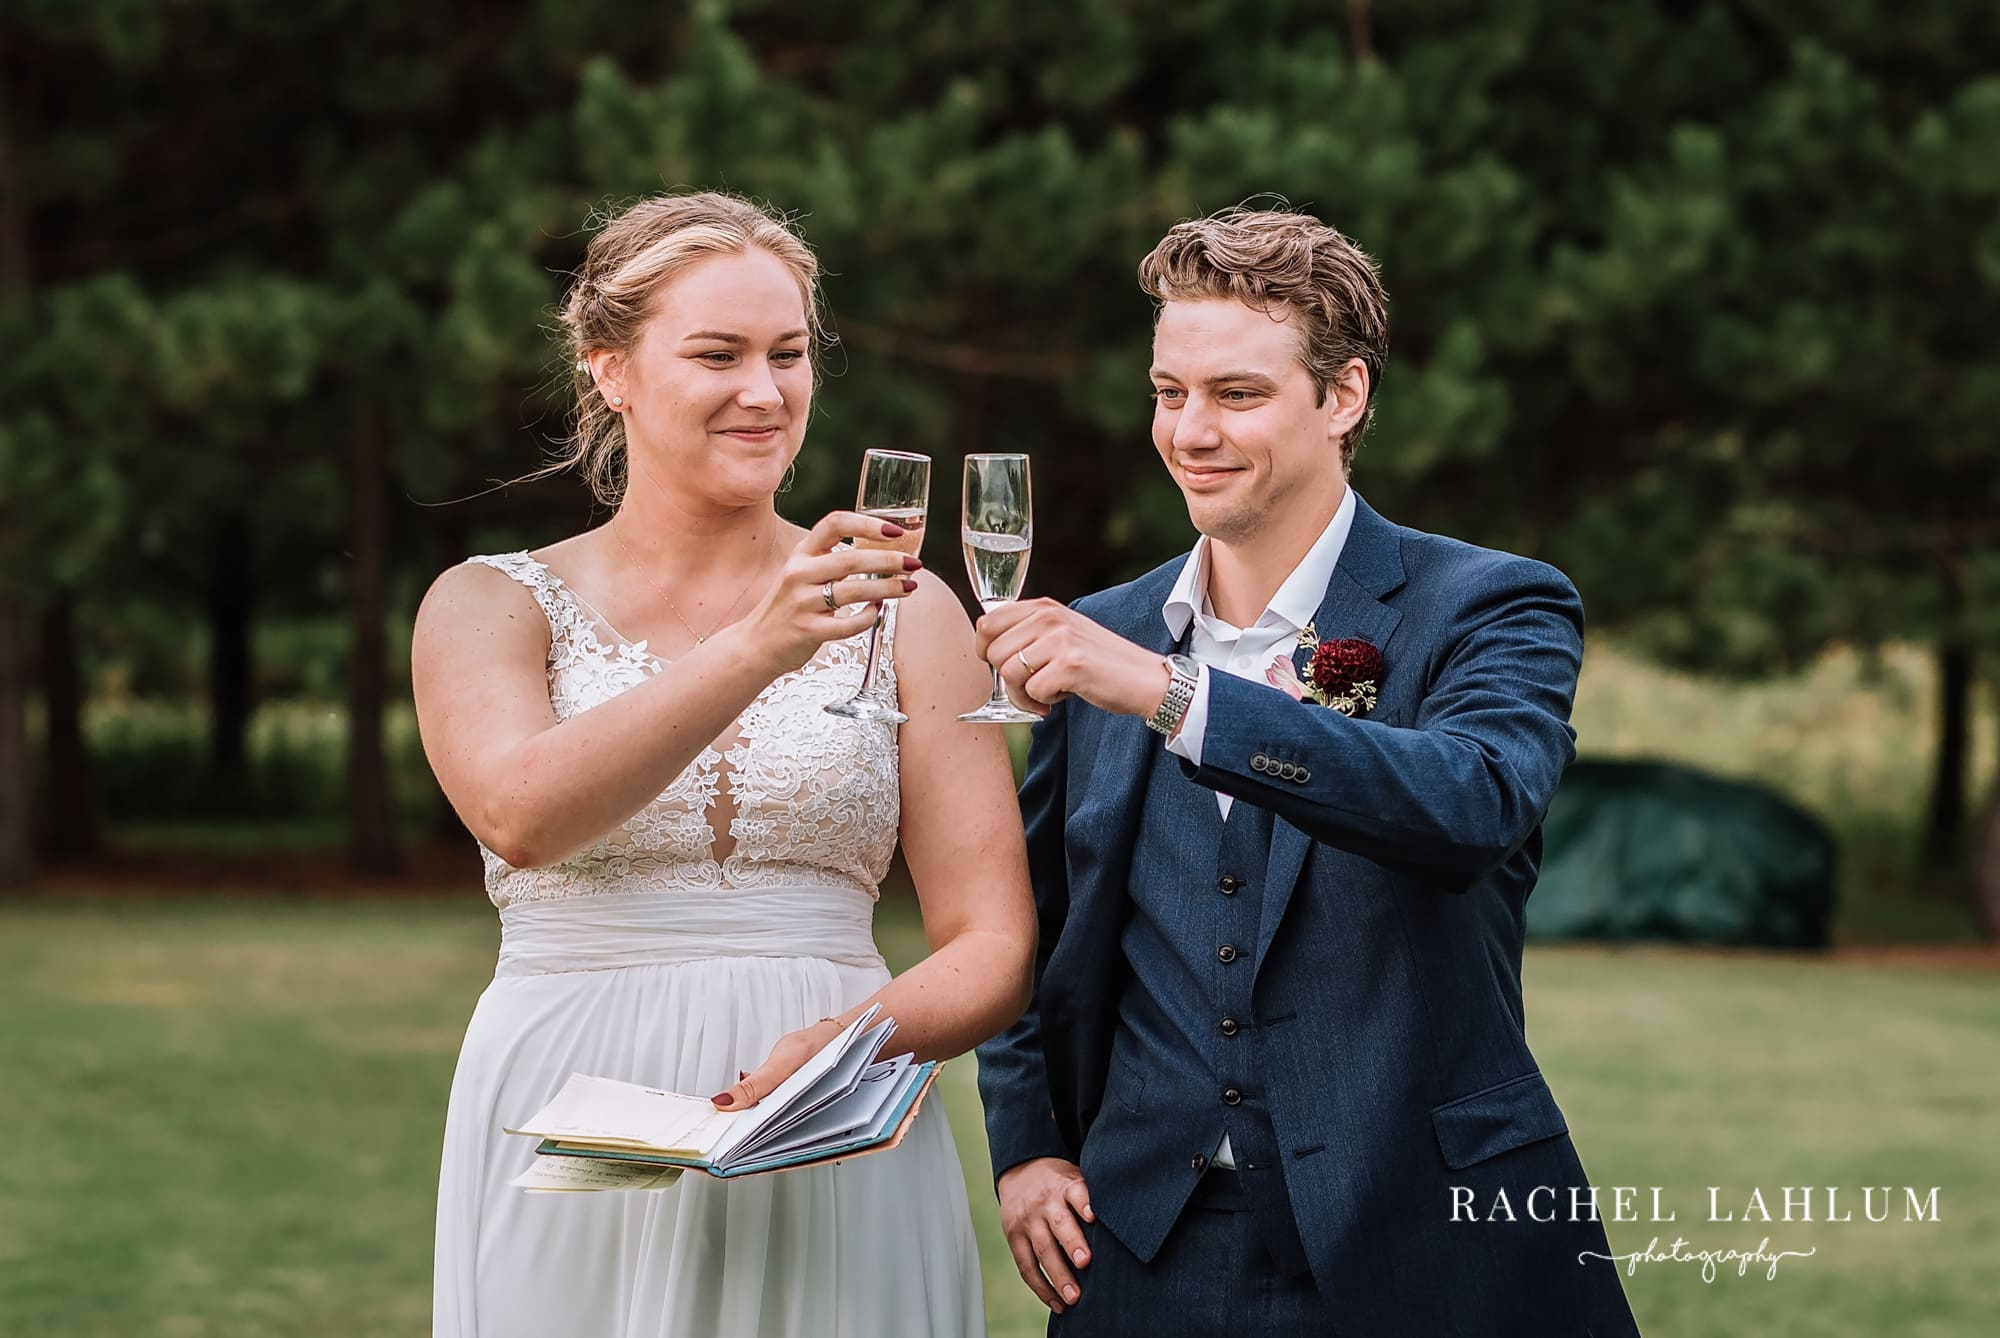 Bride and groom toast at their outdoor wedding.